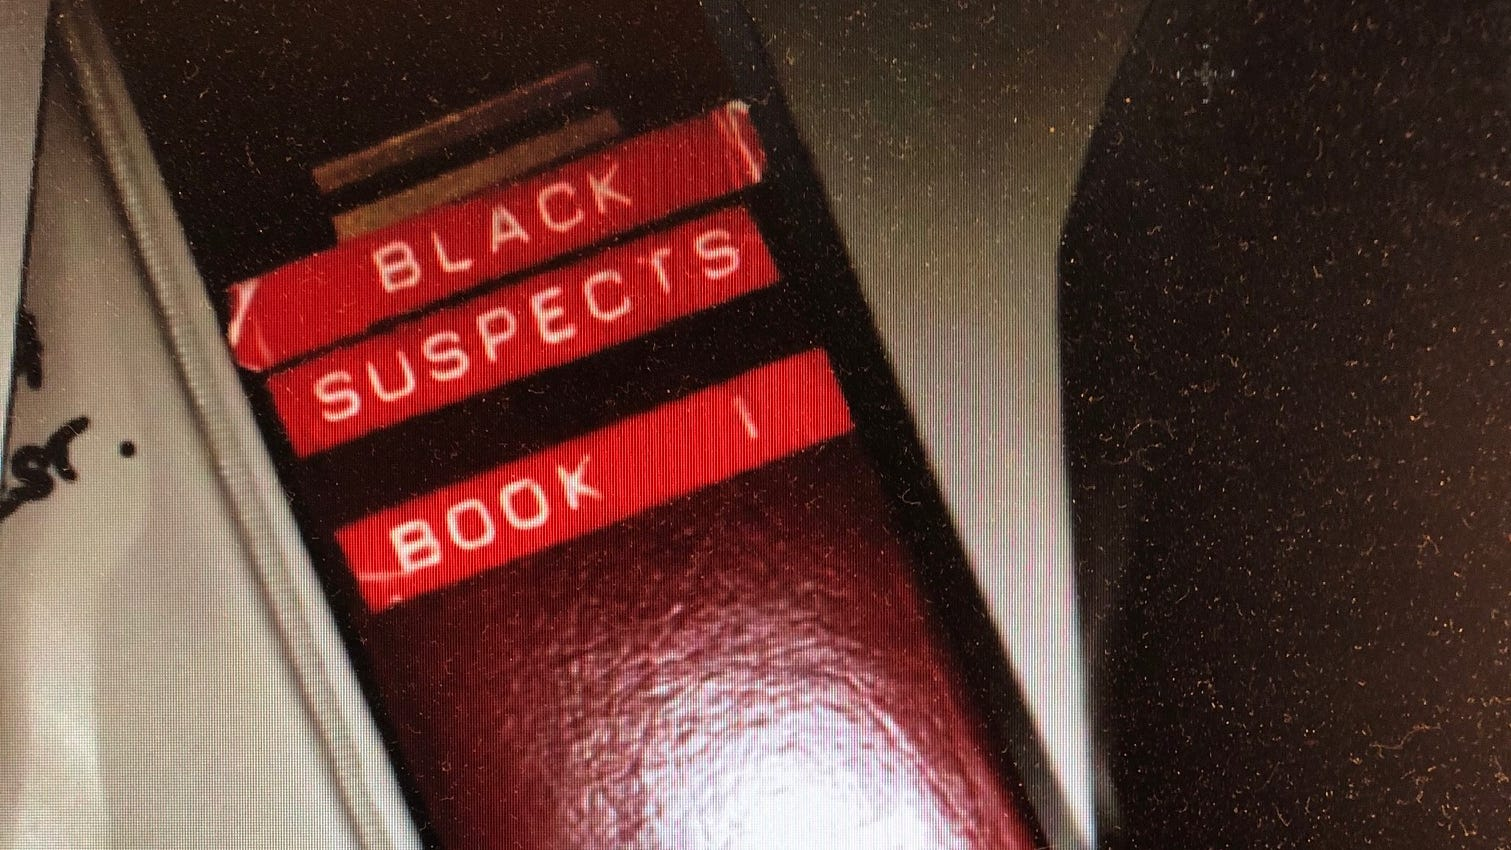 Venice Police racial profiling book was 'sinister'